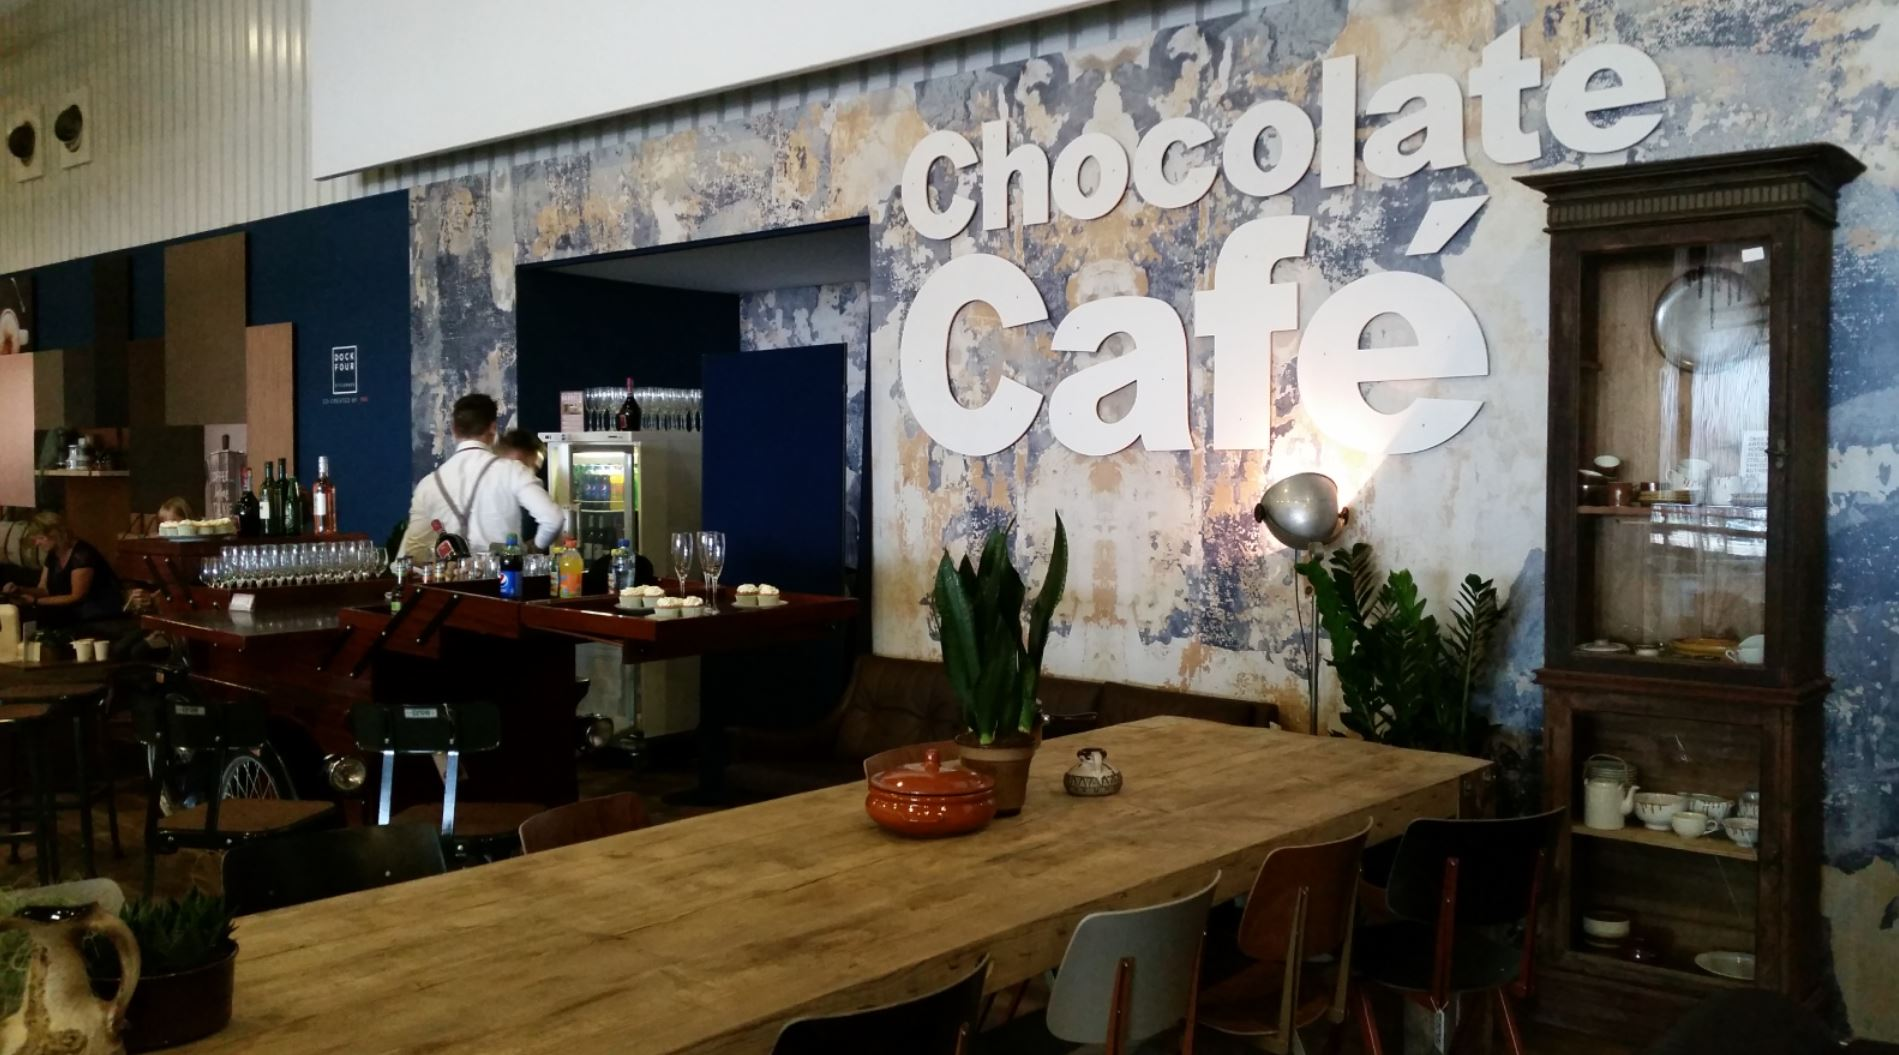 VTWEDbeurs 2015 - Meerwinkel in Chocolate cafe